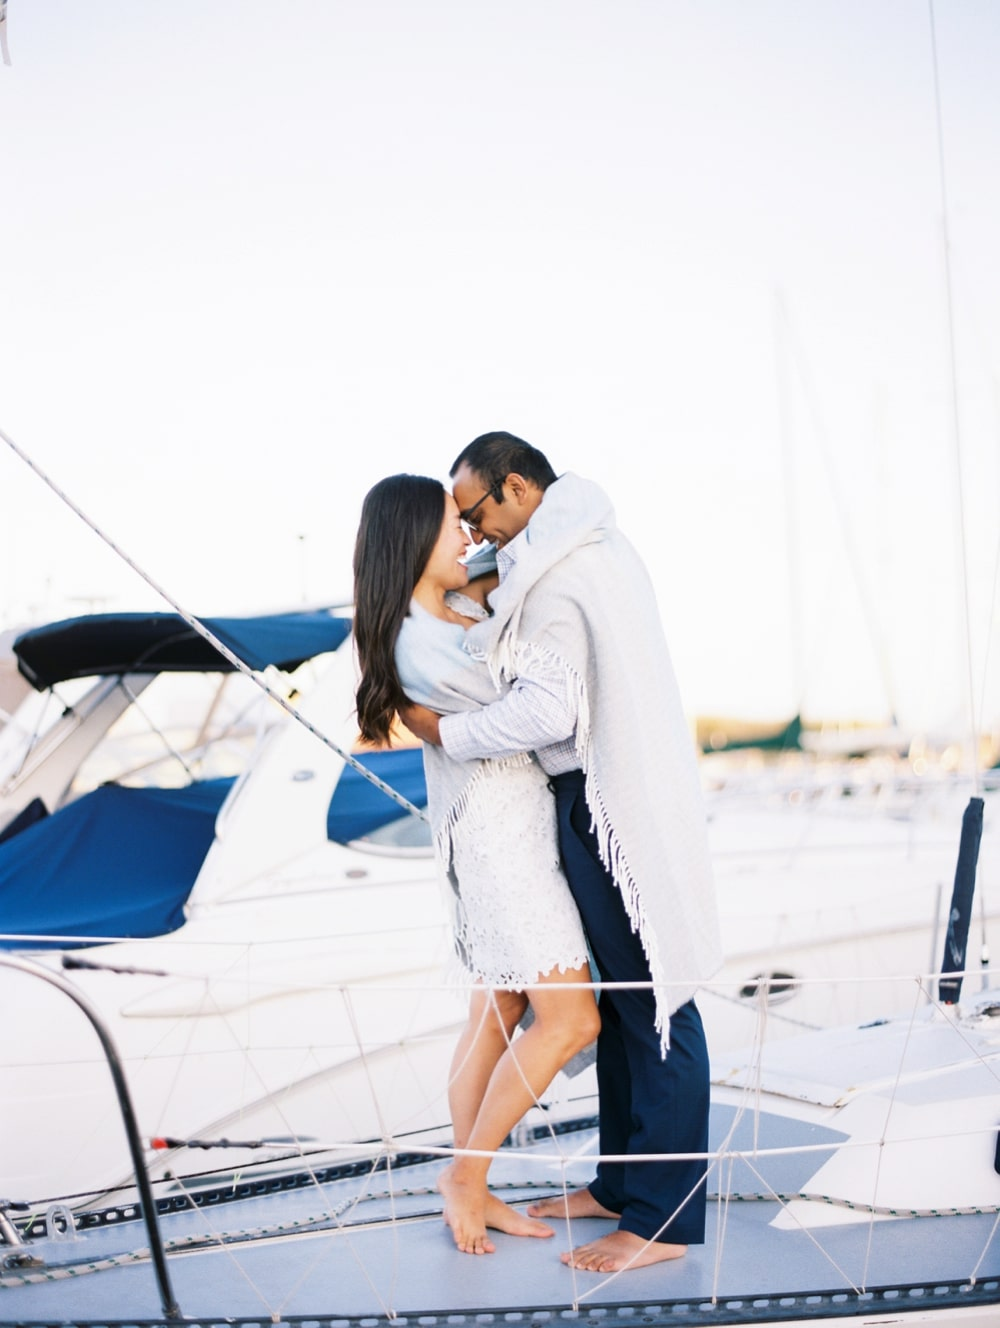 kristin-la-voie-photography-Chicago-wedding-photographer-lake-michigan-sailing-43